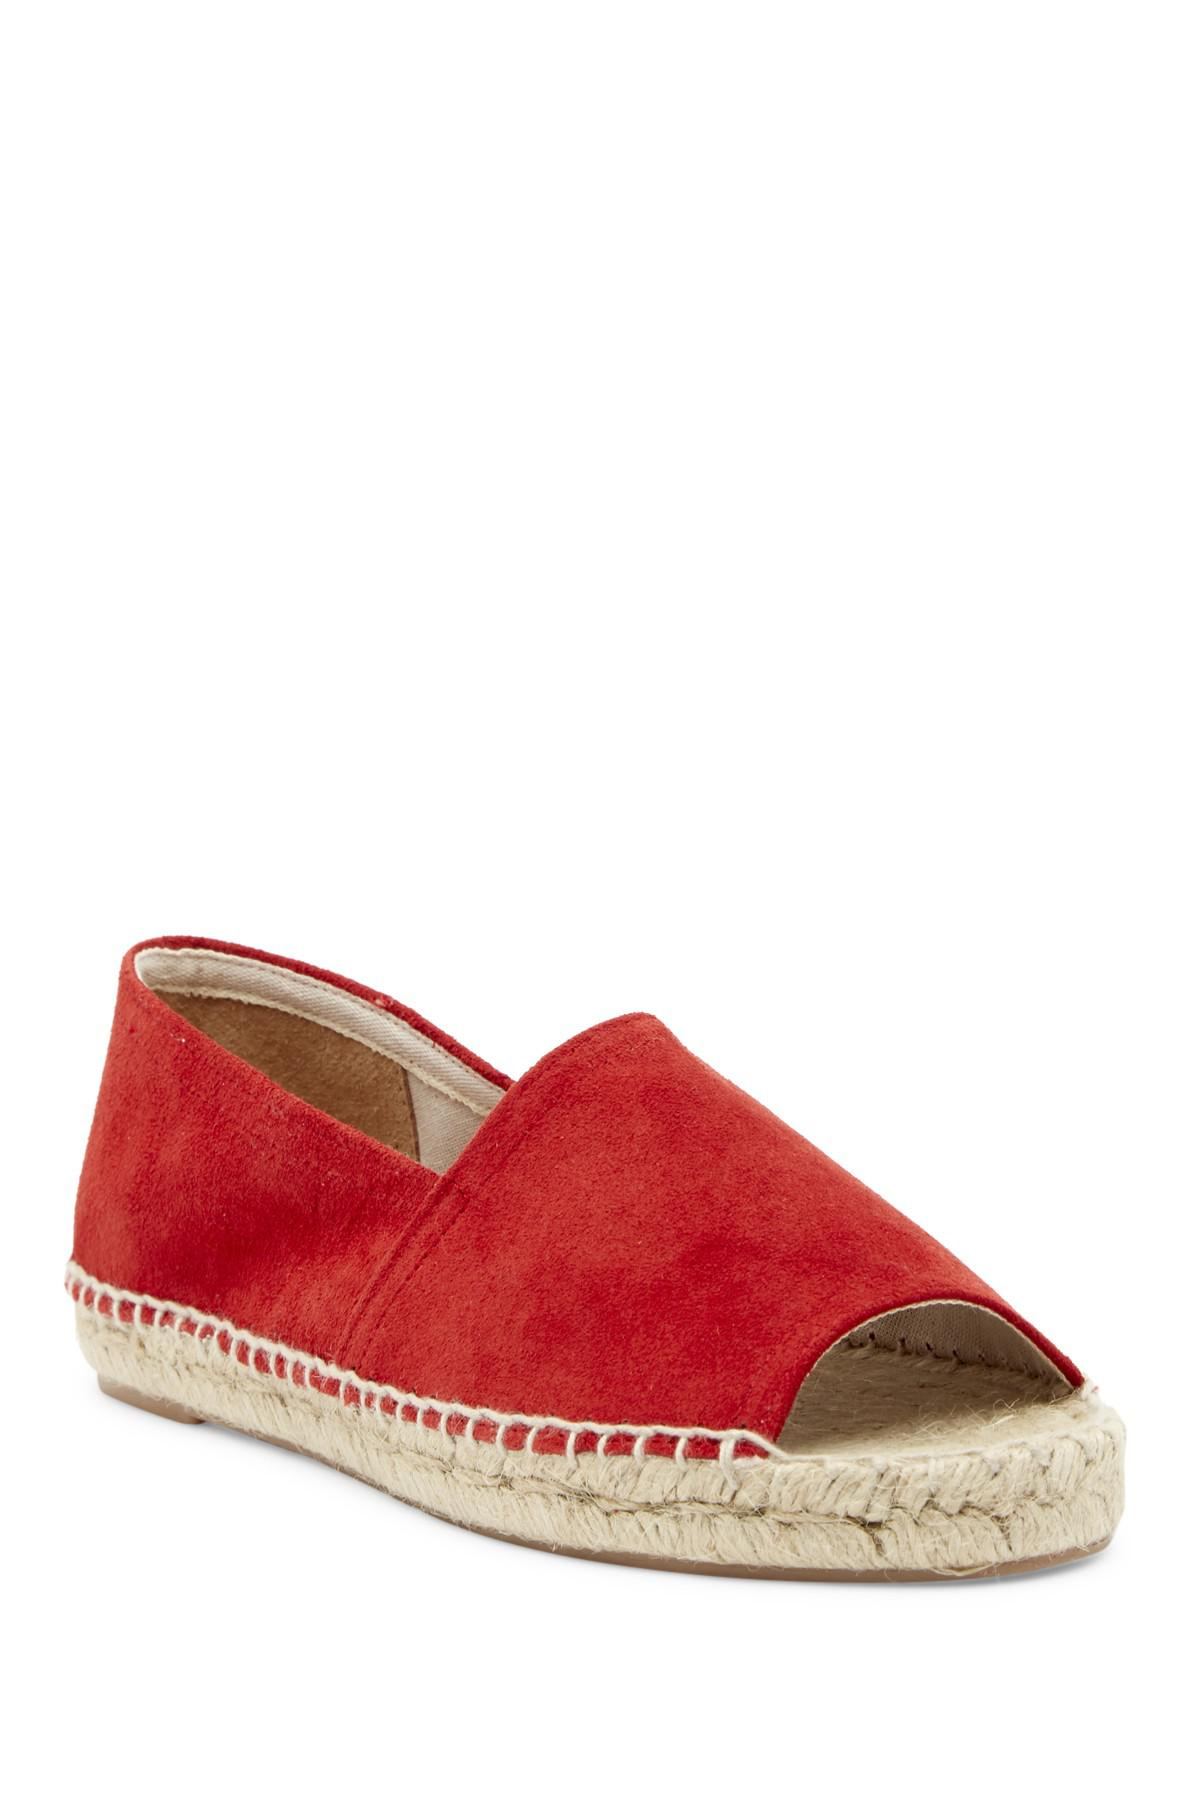 Patricia Green Striped Espadrille Flat